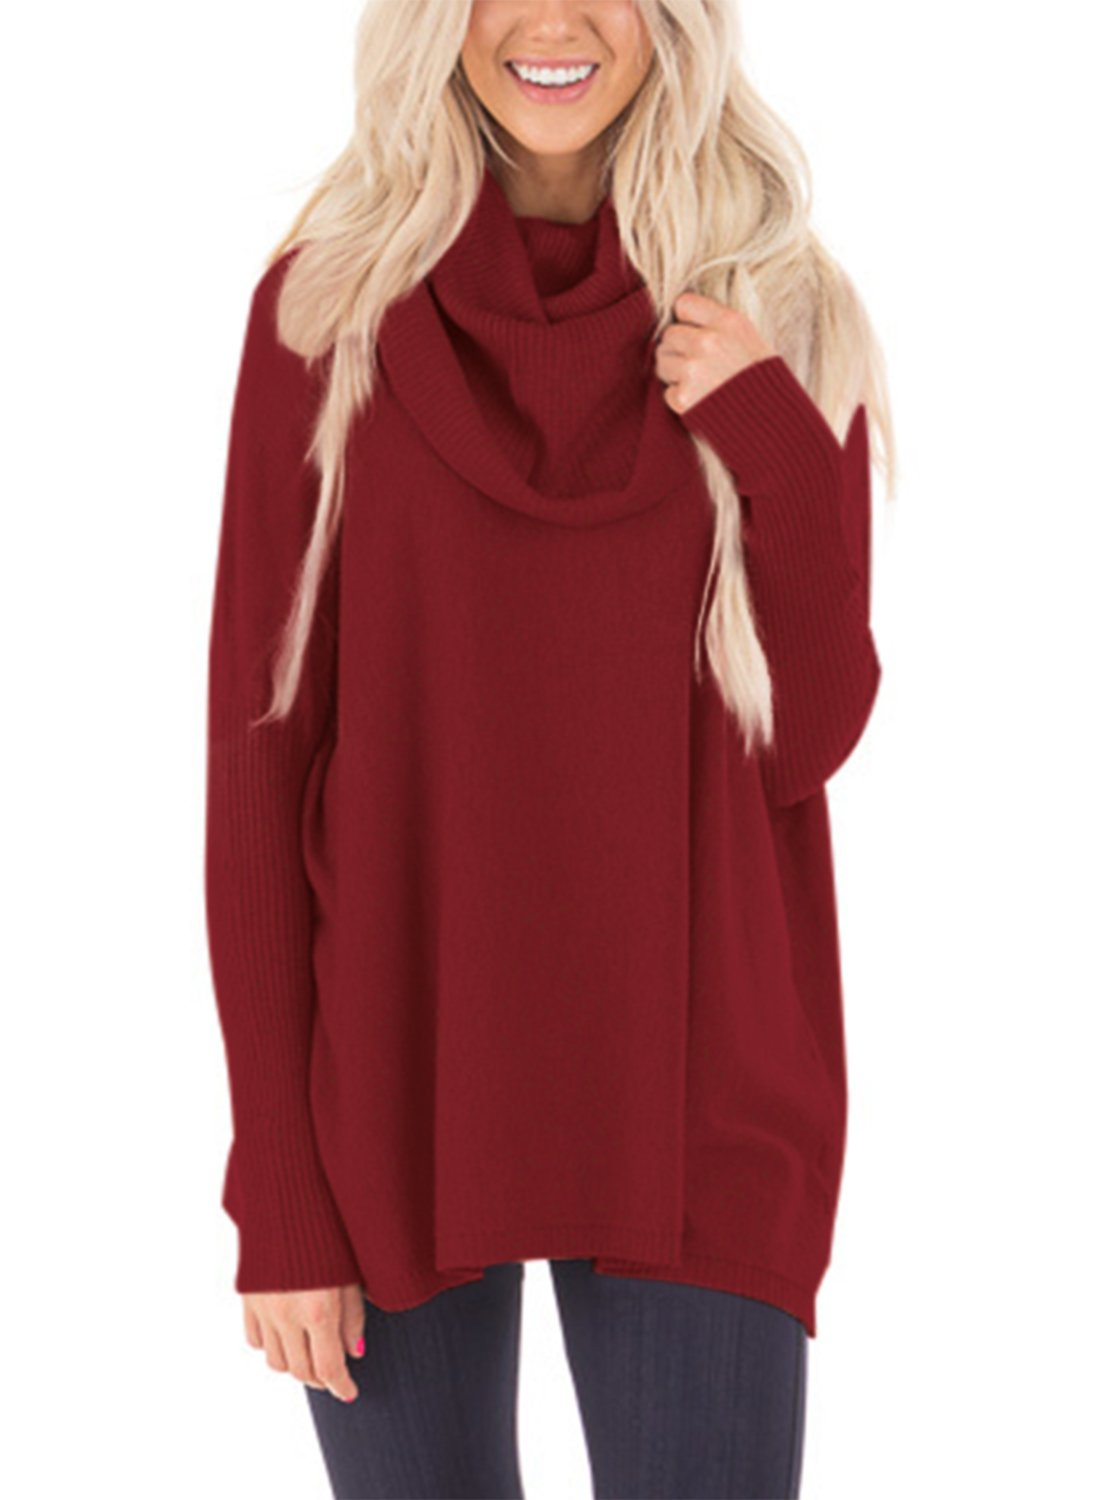 Dokotoo Womens Pullover Regular Elgant Casual Loose Amazon Long Sleeve Cowl Neck Chunky Knit Pullover Sweaters Blouse Tops Wine Large